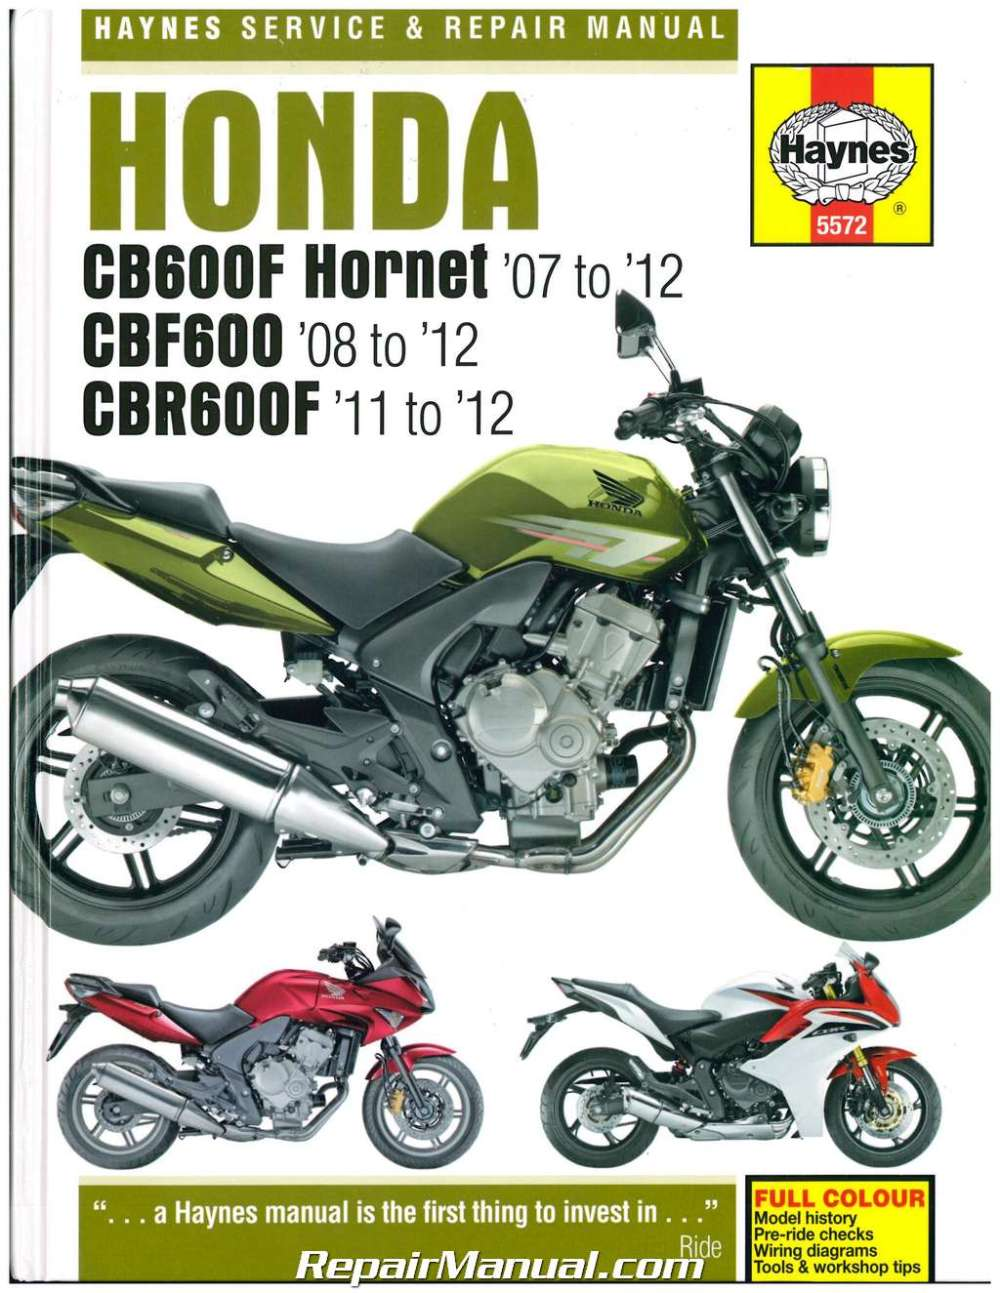 medium resolution of honda cb600f hornet cbf600 cbr600f 2007 2012 haynes repair manual